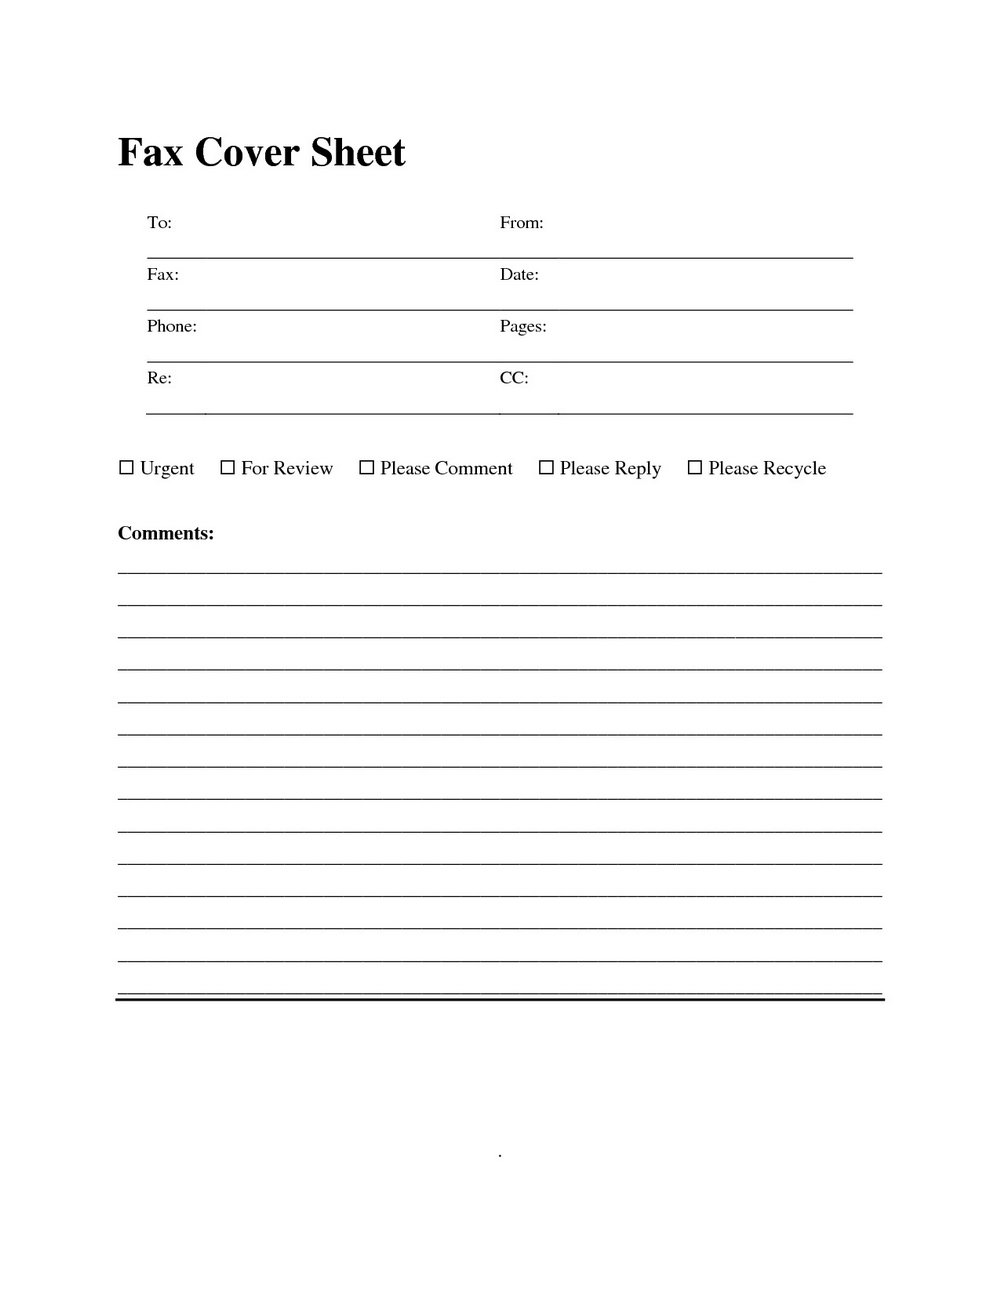 Fax Cover Letter Template Printable